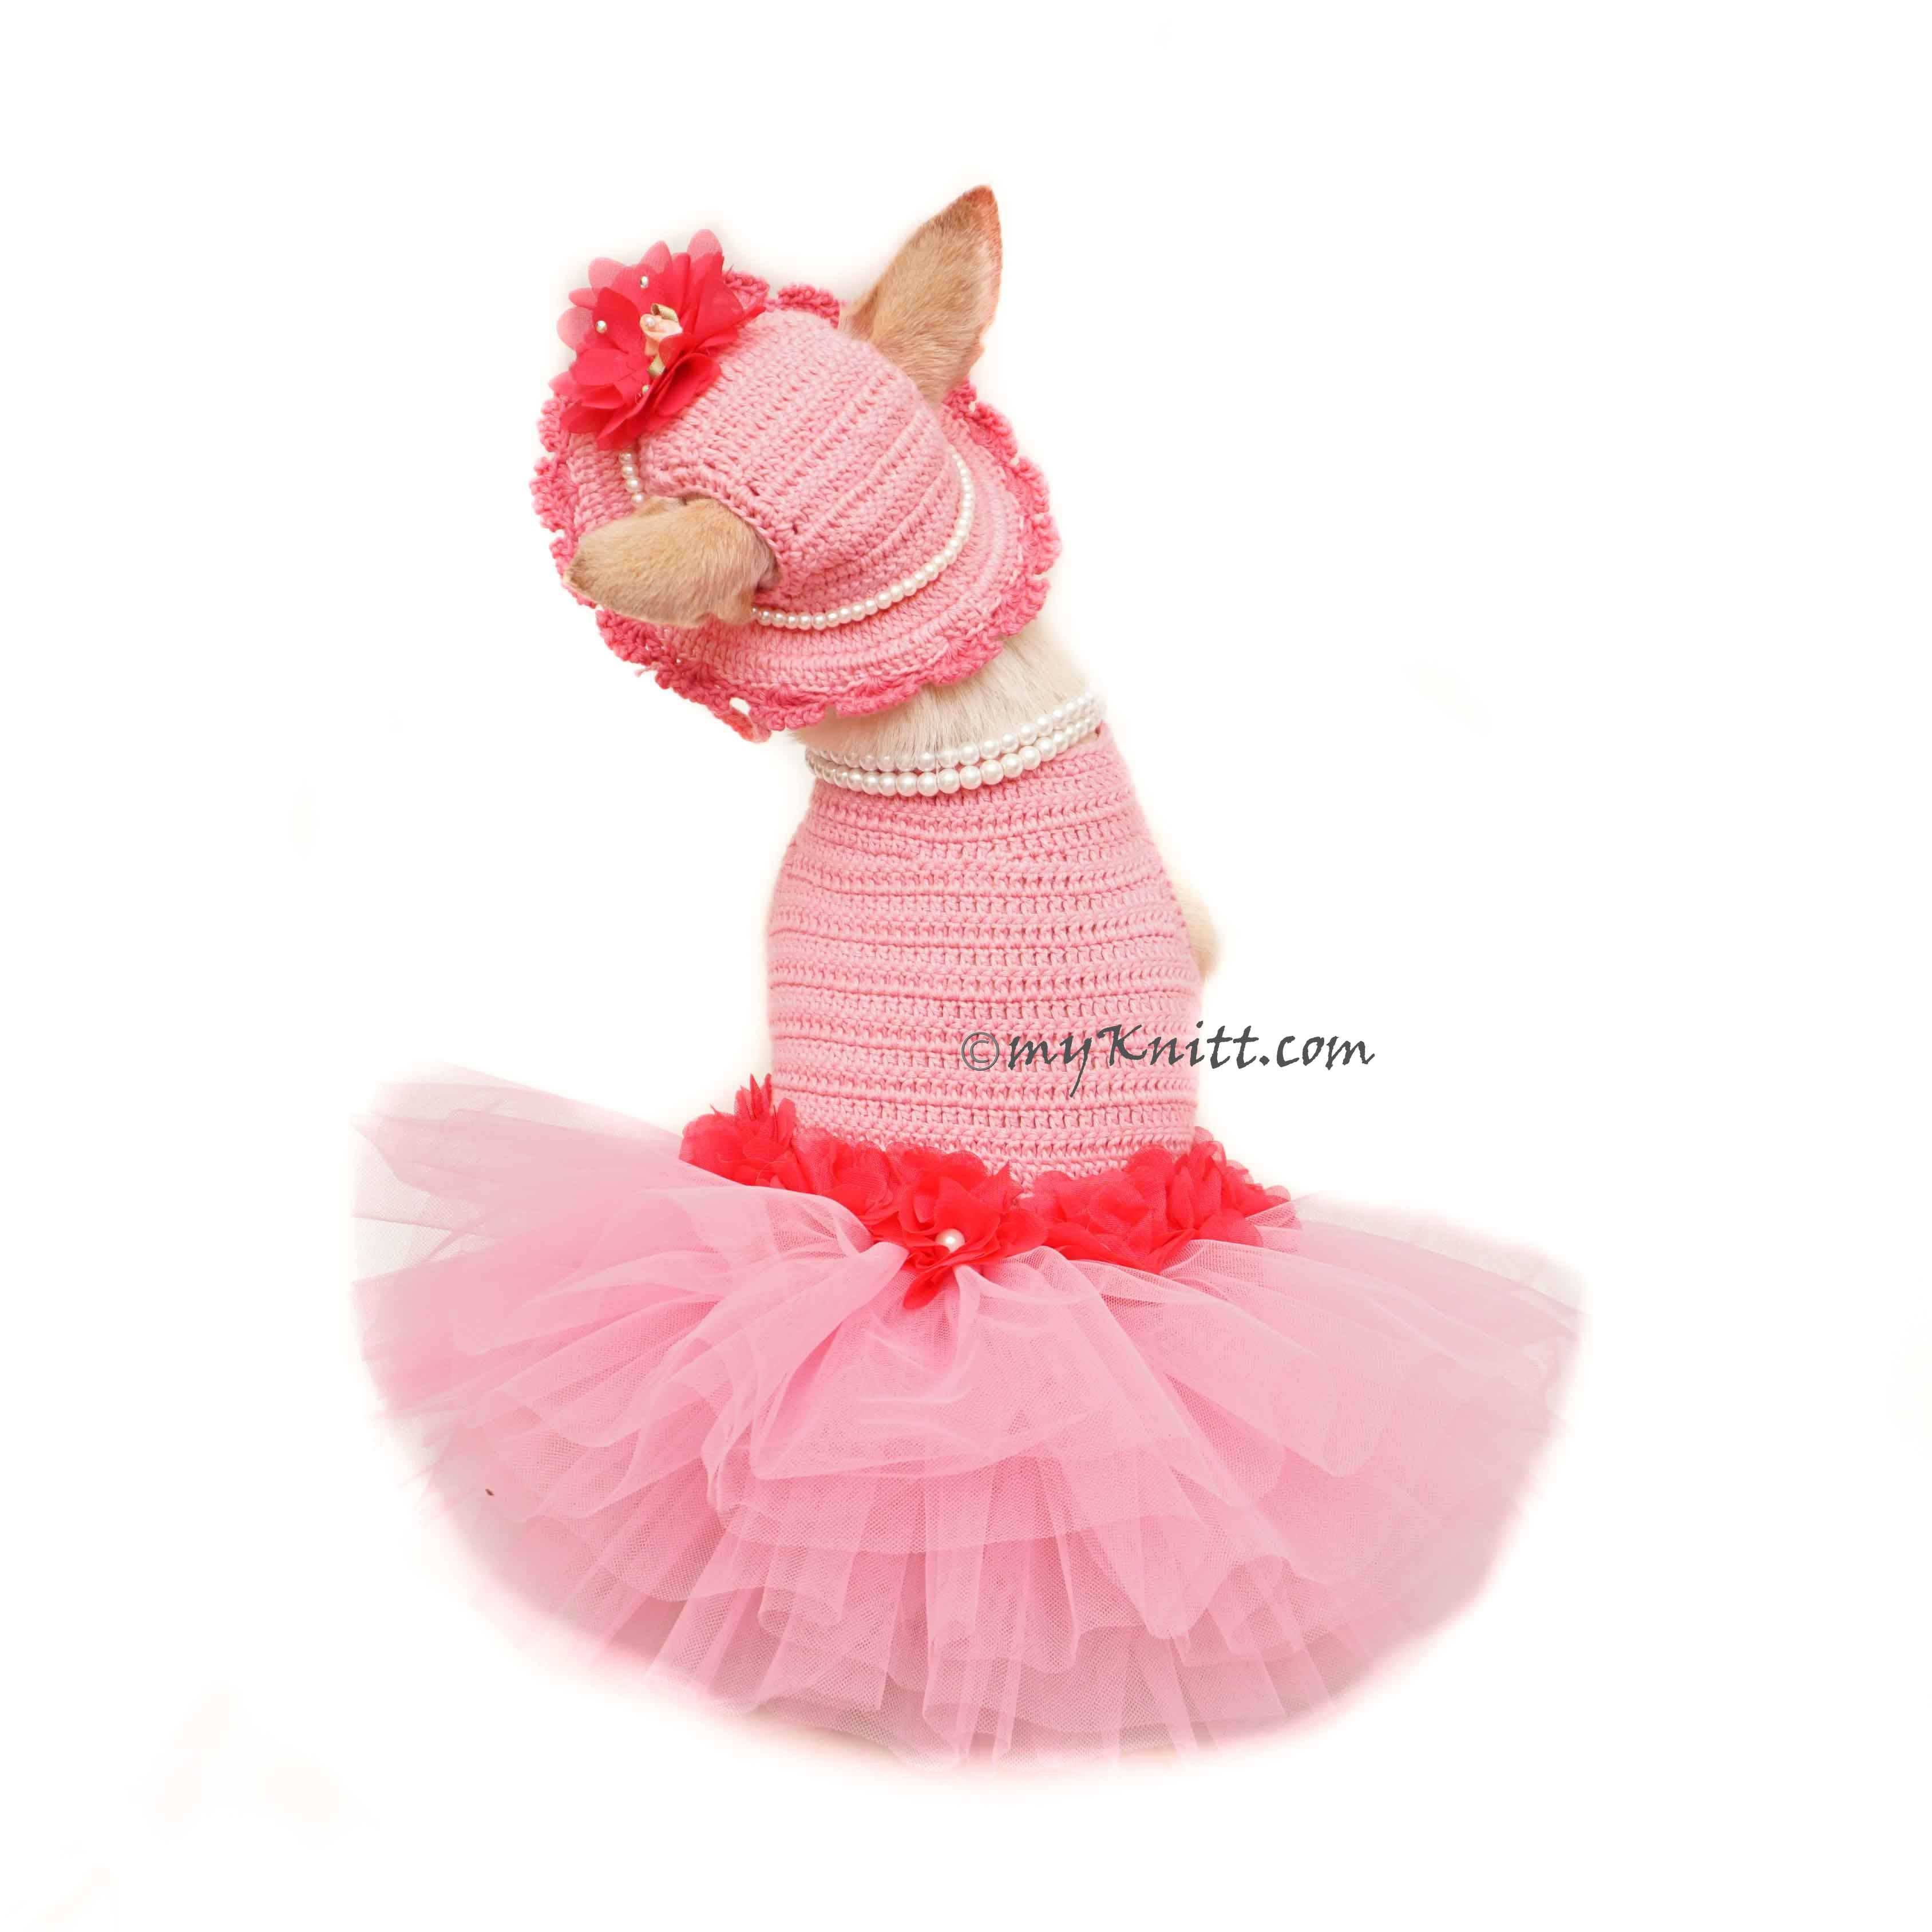 Lady Pink Chihuahua Dress with Chihuahua Dog Hat, Pink Dog Tutu DF144  by Myknitt